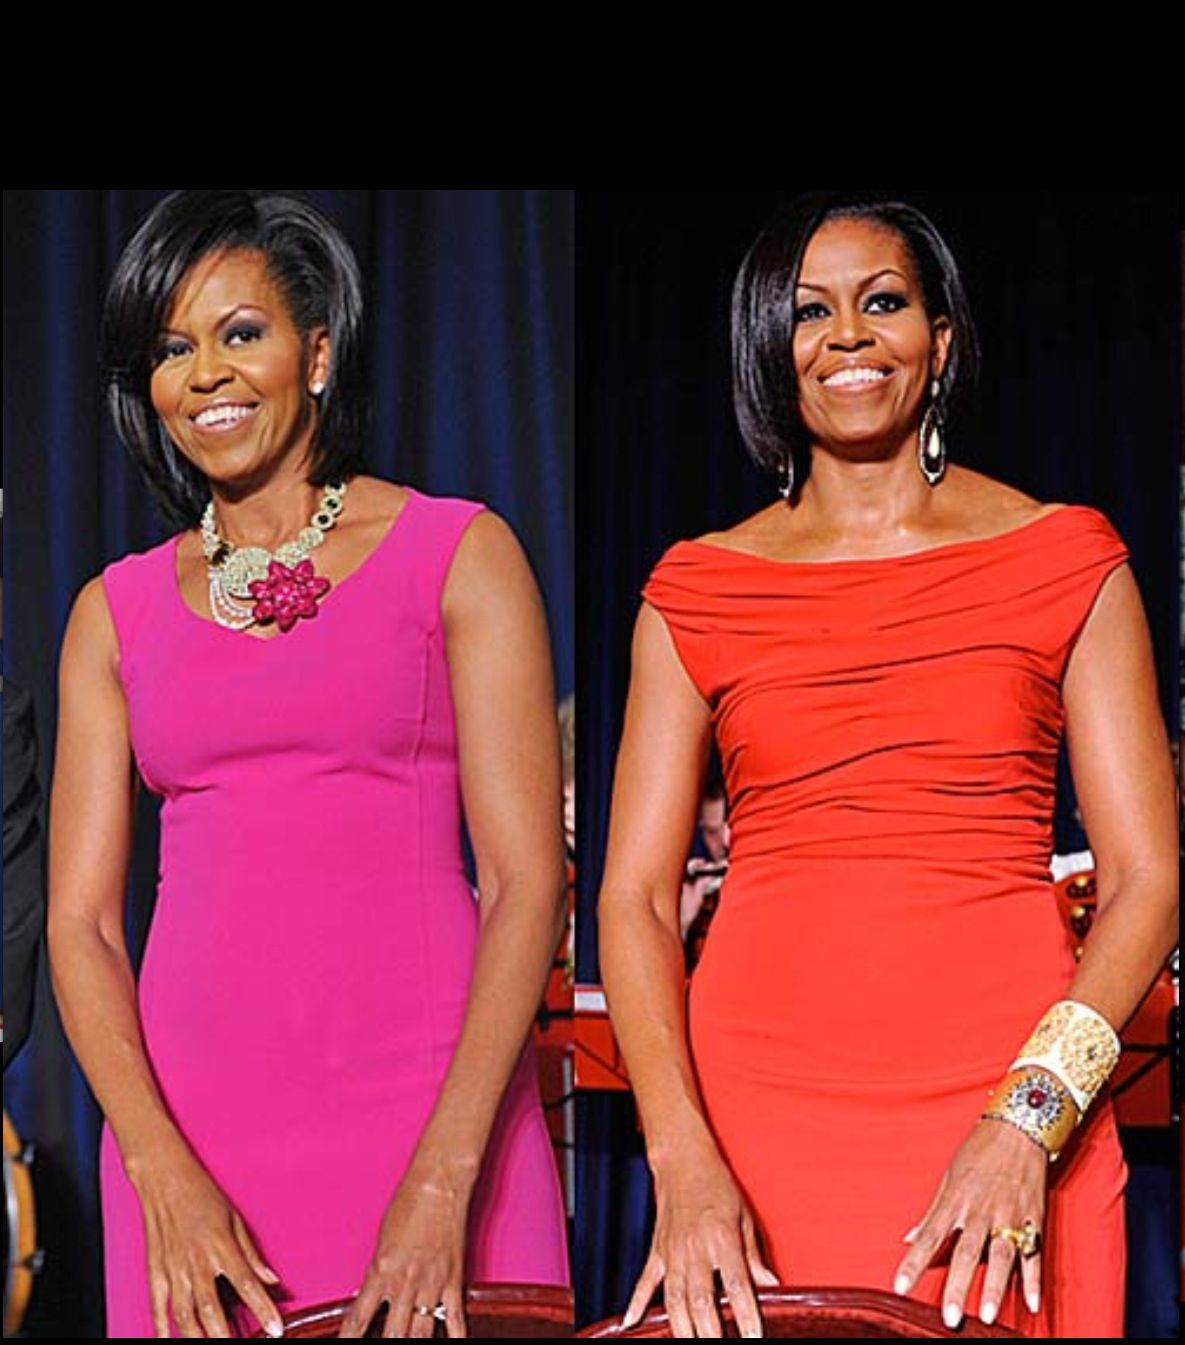 Obamas wife black before american